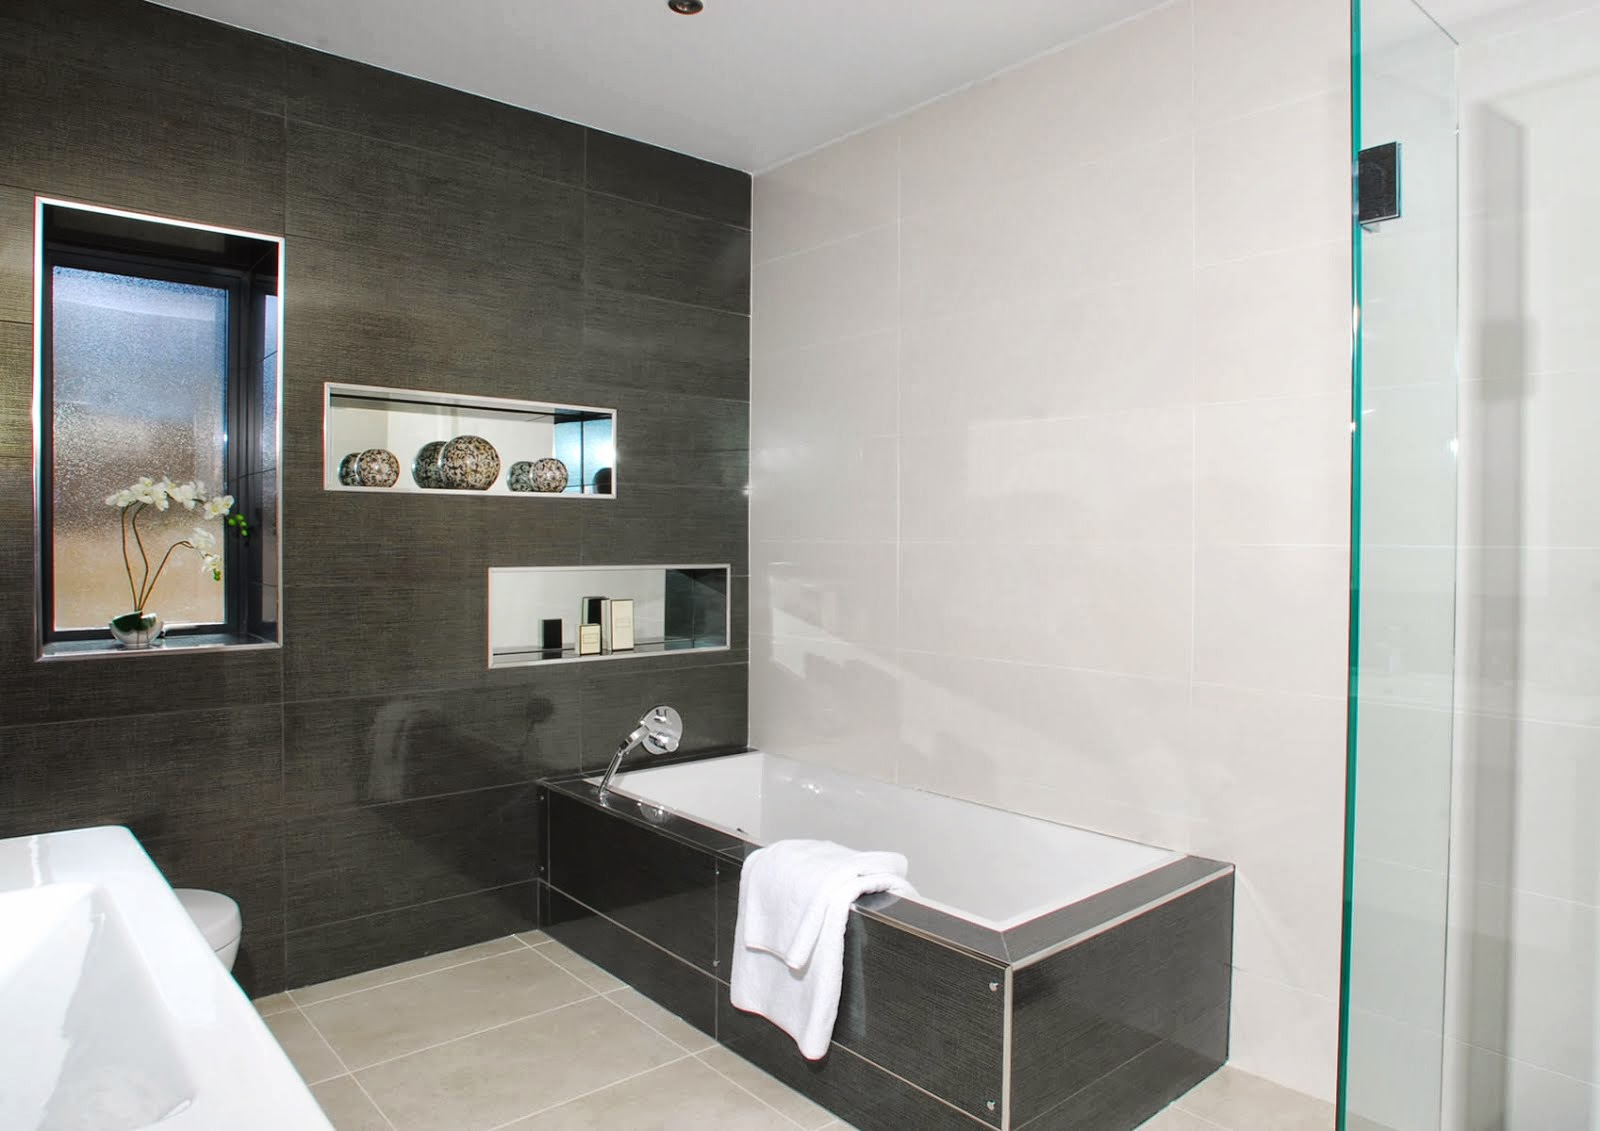 Bathroom design ideas uk for Bath design ideas